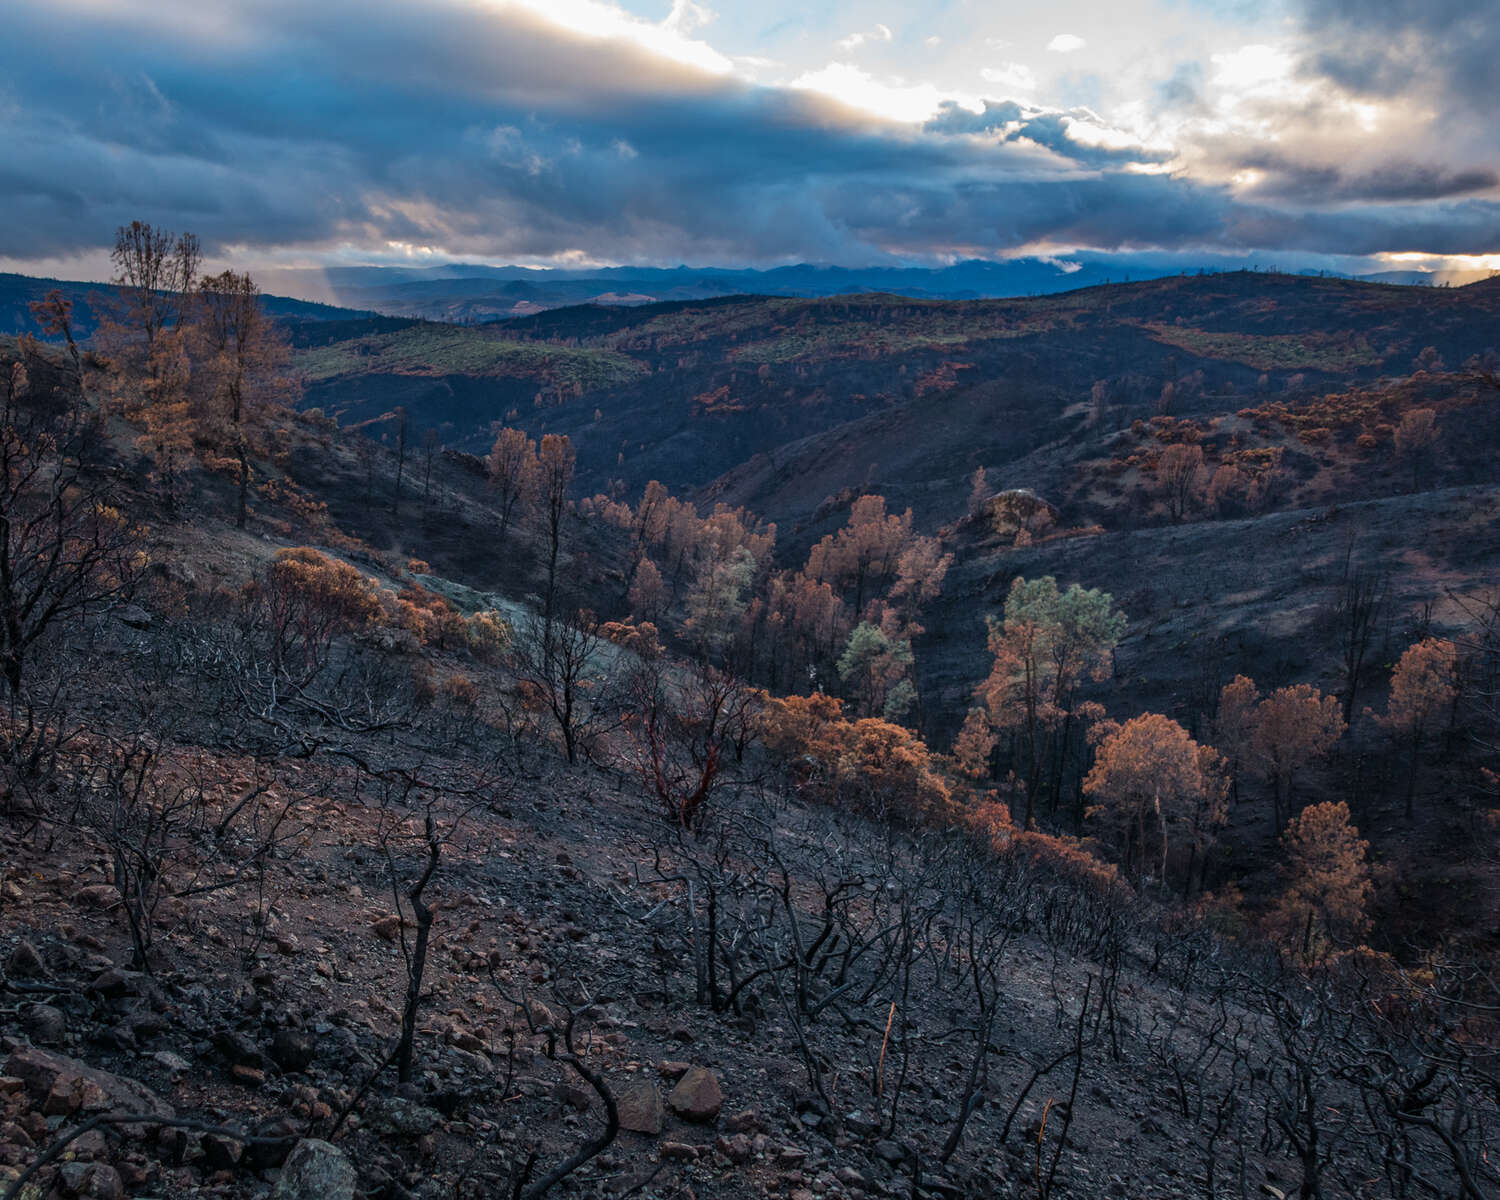 After the burn. Lake County, California